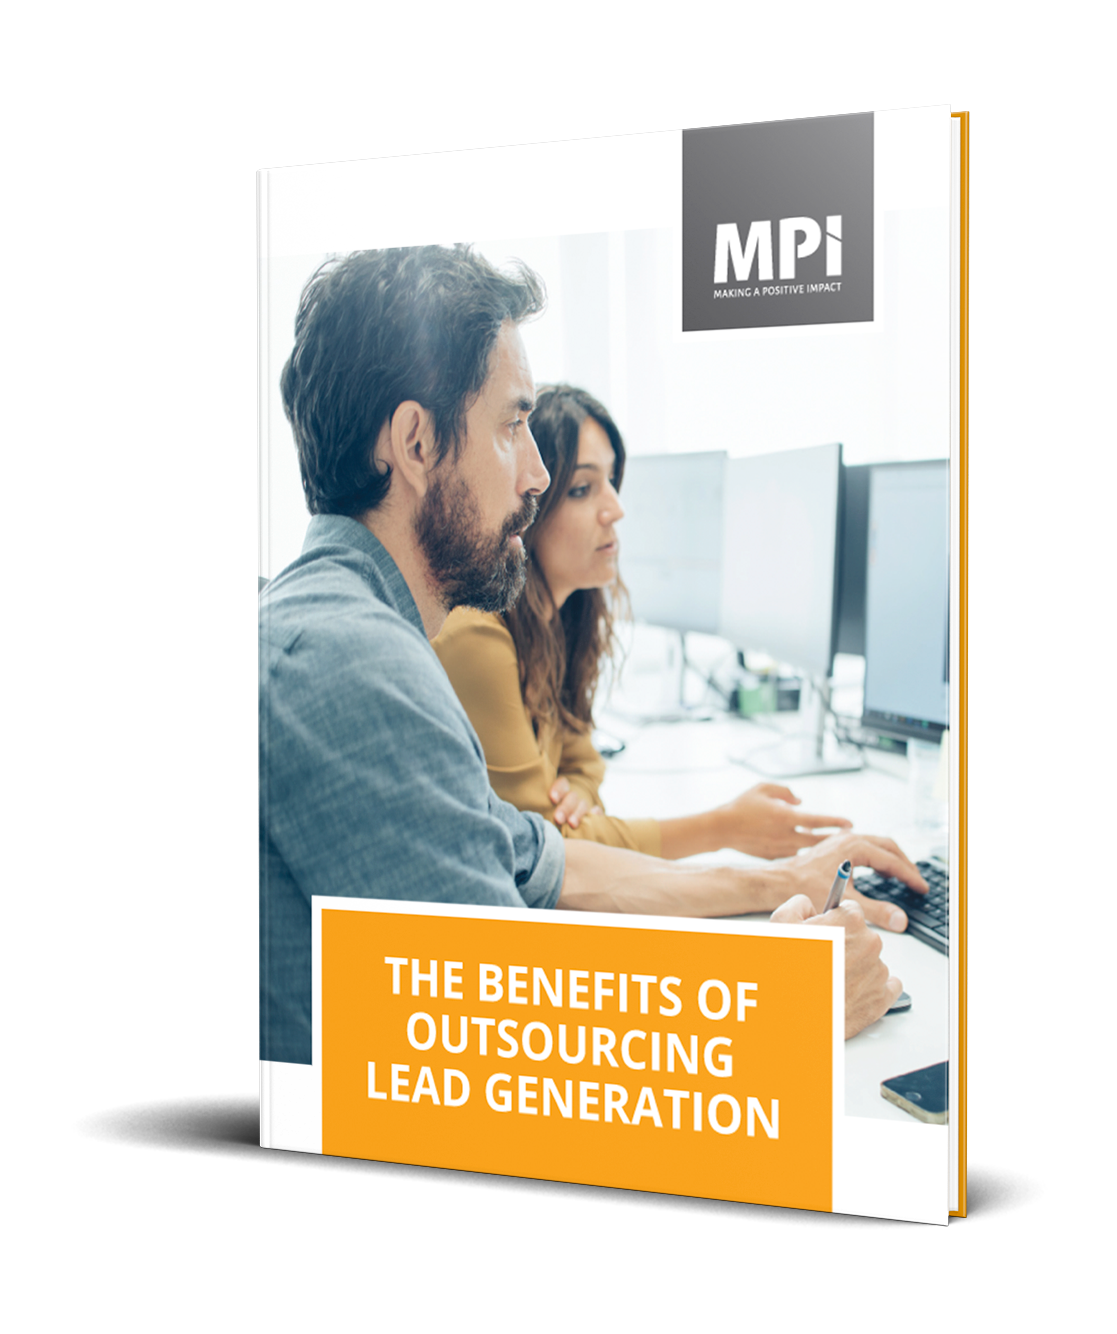 The Benefits of Outsourcing lead generation